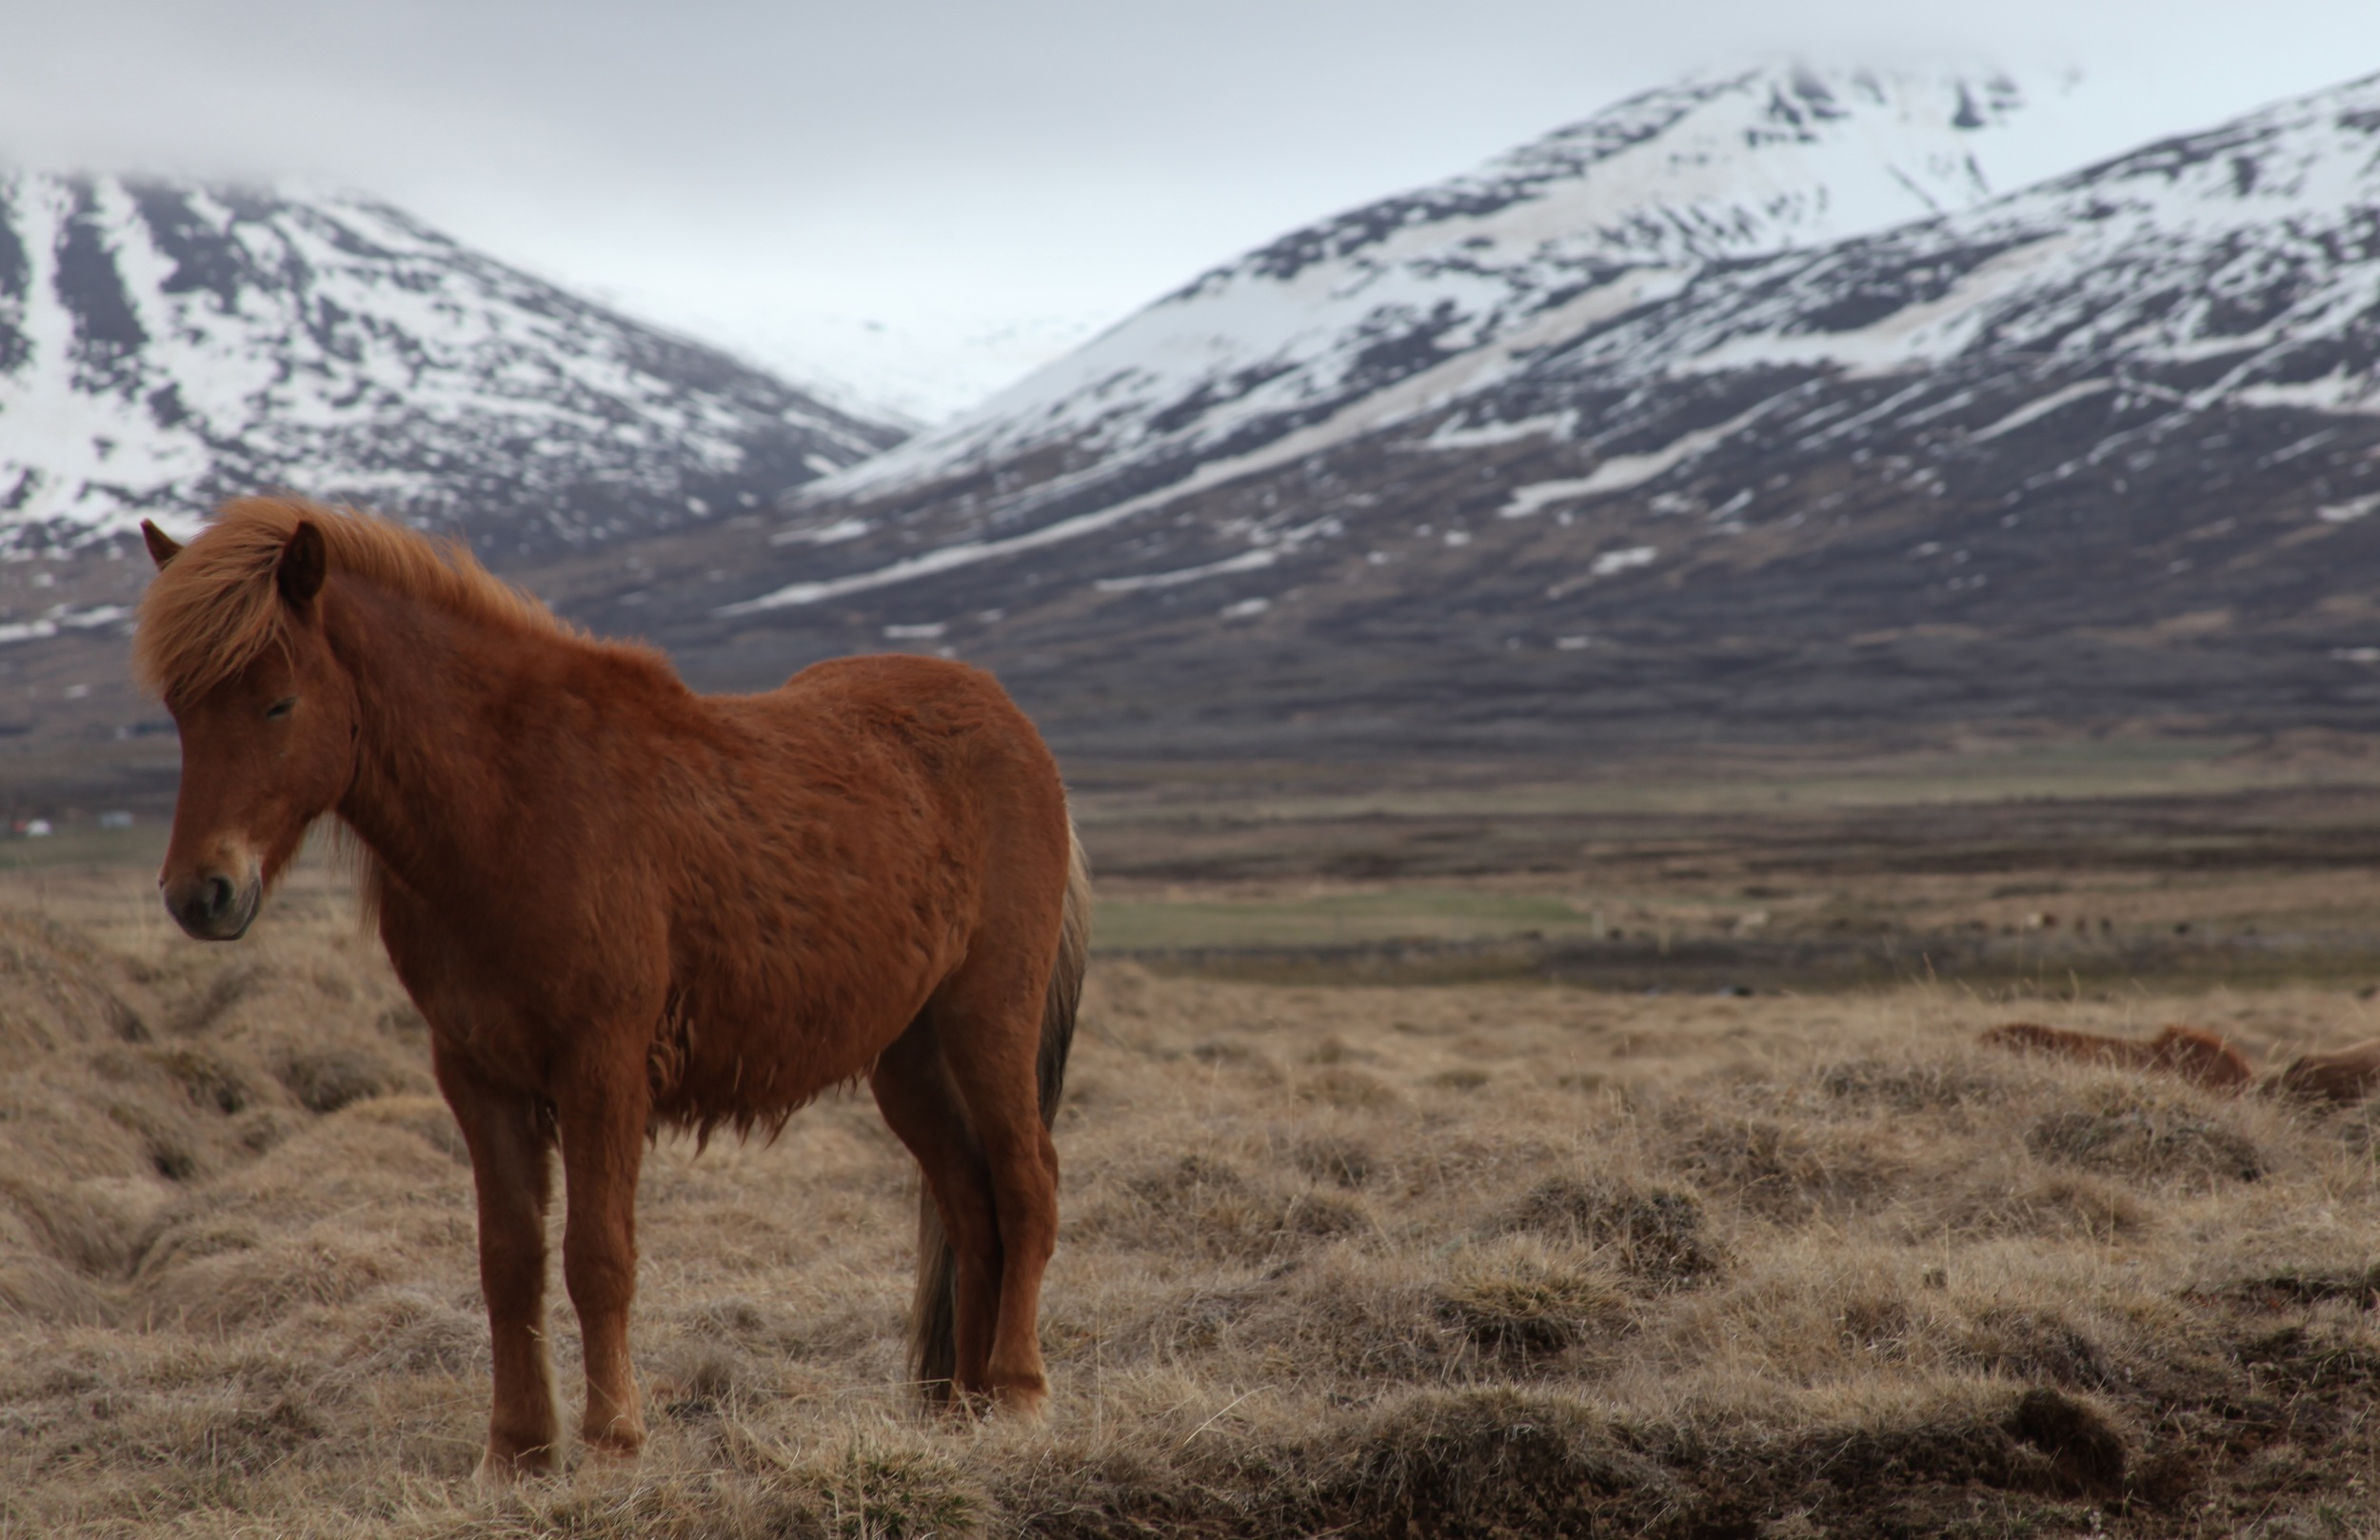 A young horse in northwestern Iceland (Photo by Andrew Evans)